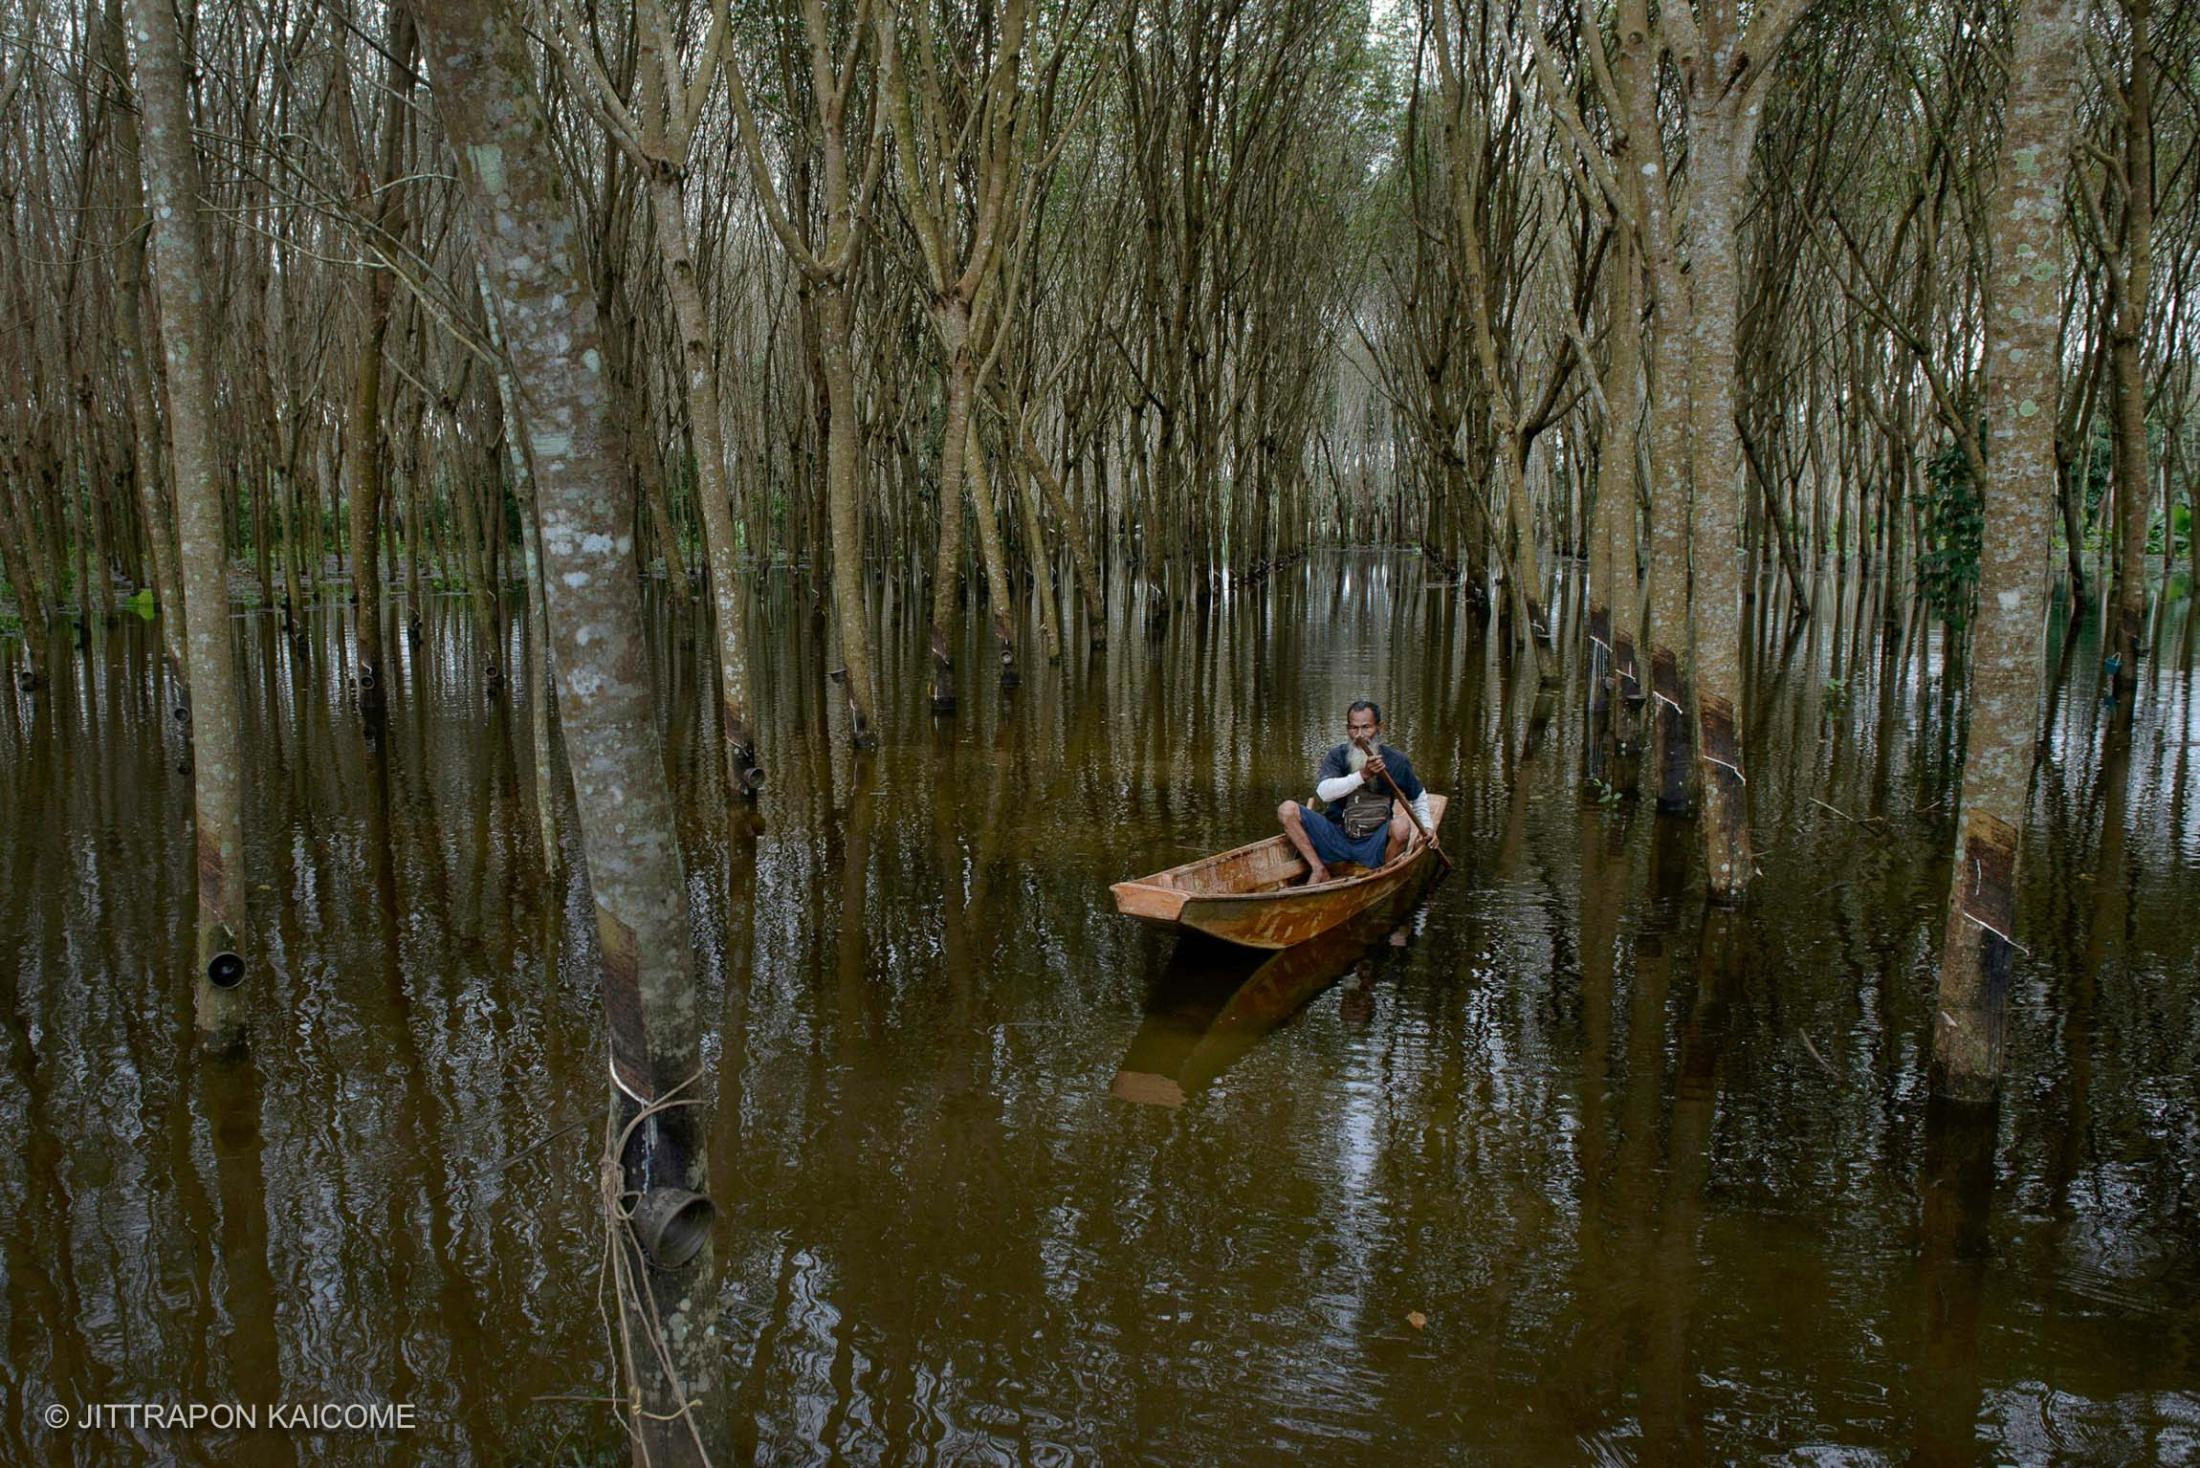 Unseasonably heavy rainfall in Southern Thailand causing widespread flooding, a farmer paddles his way through rubber tree plantations, the economic plant which is the main income to farmers in Southern Thailand. January 17, 2017-Phunphin, Surat Thani, Thailand.